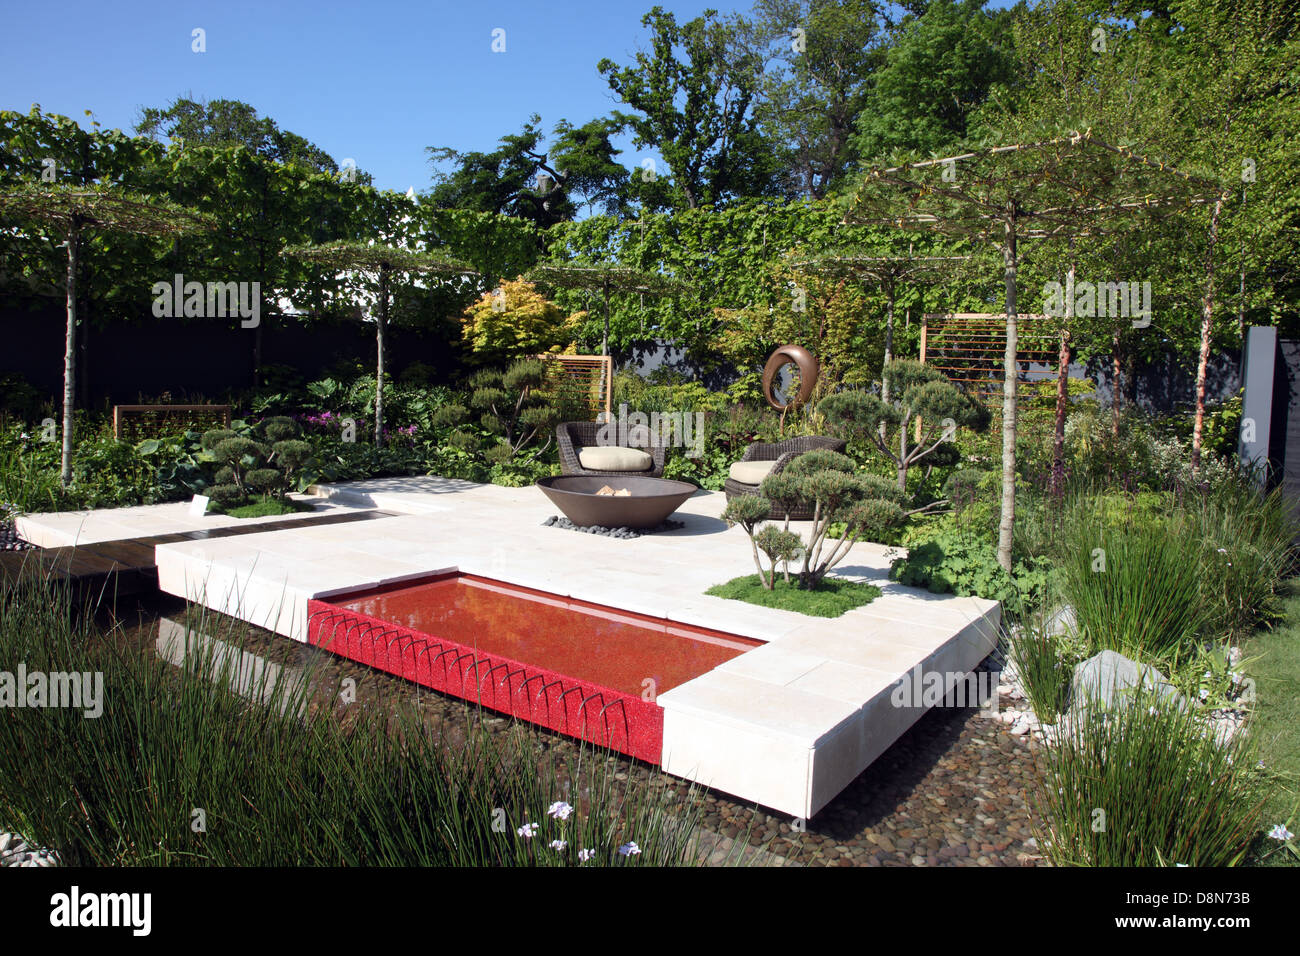 Riverside Calm, show garden by Kevin Dennis and Michael Carroll, shown at Bloom 2013, Ireland's premier garden - Stock Image